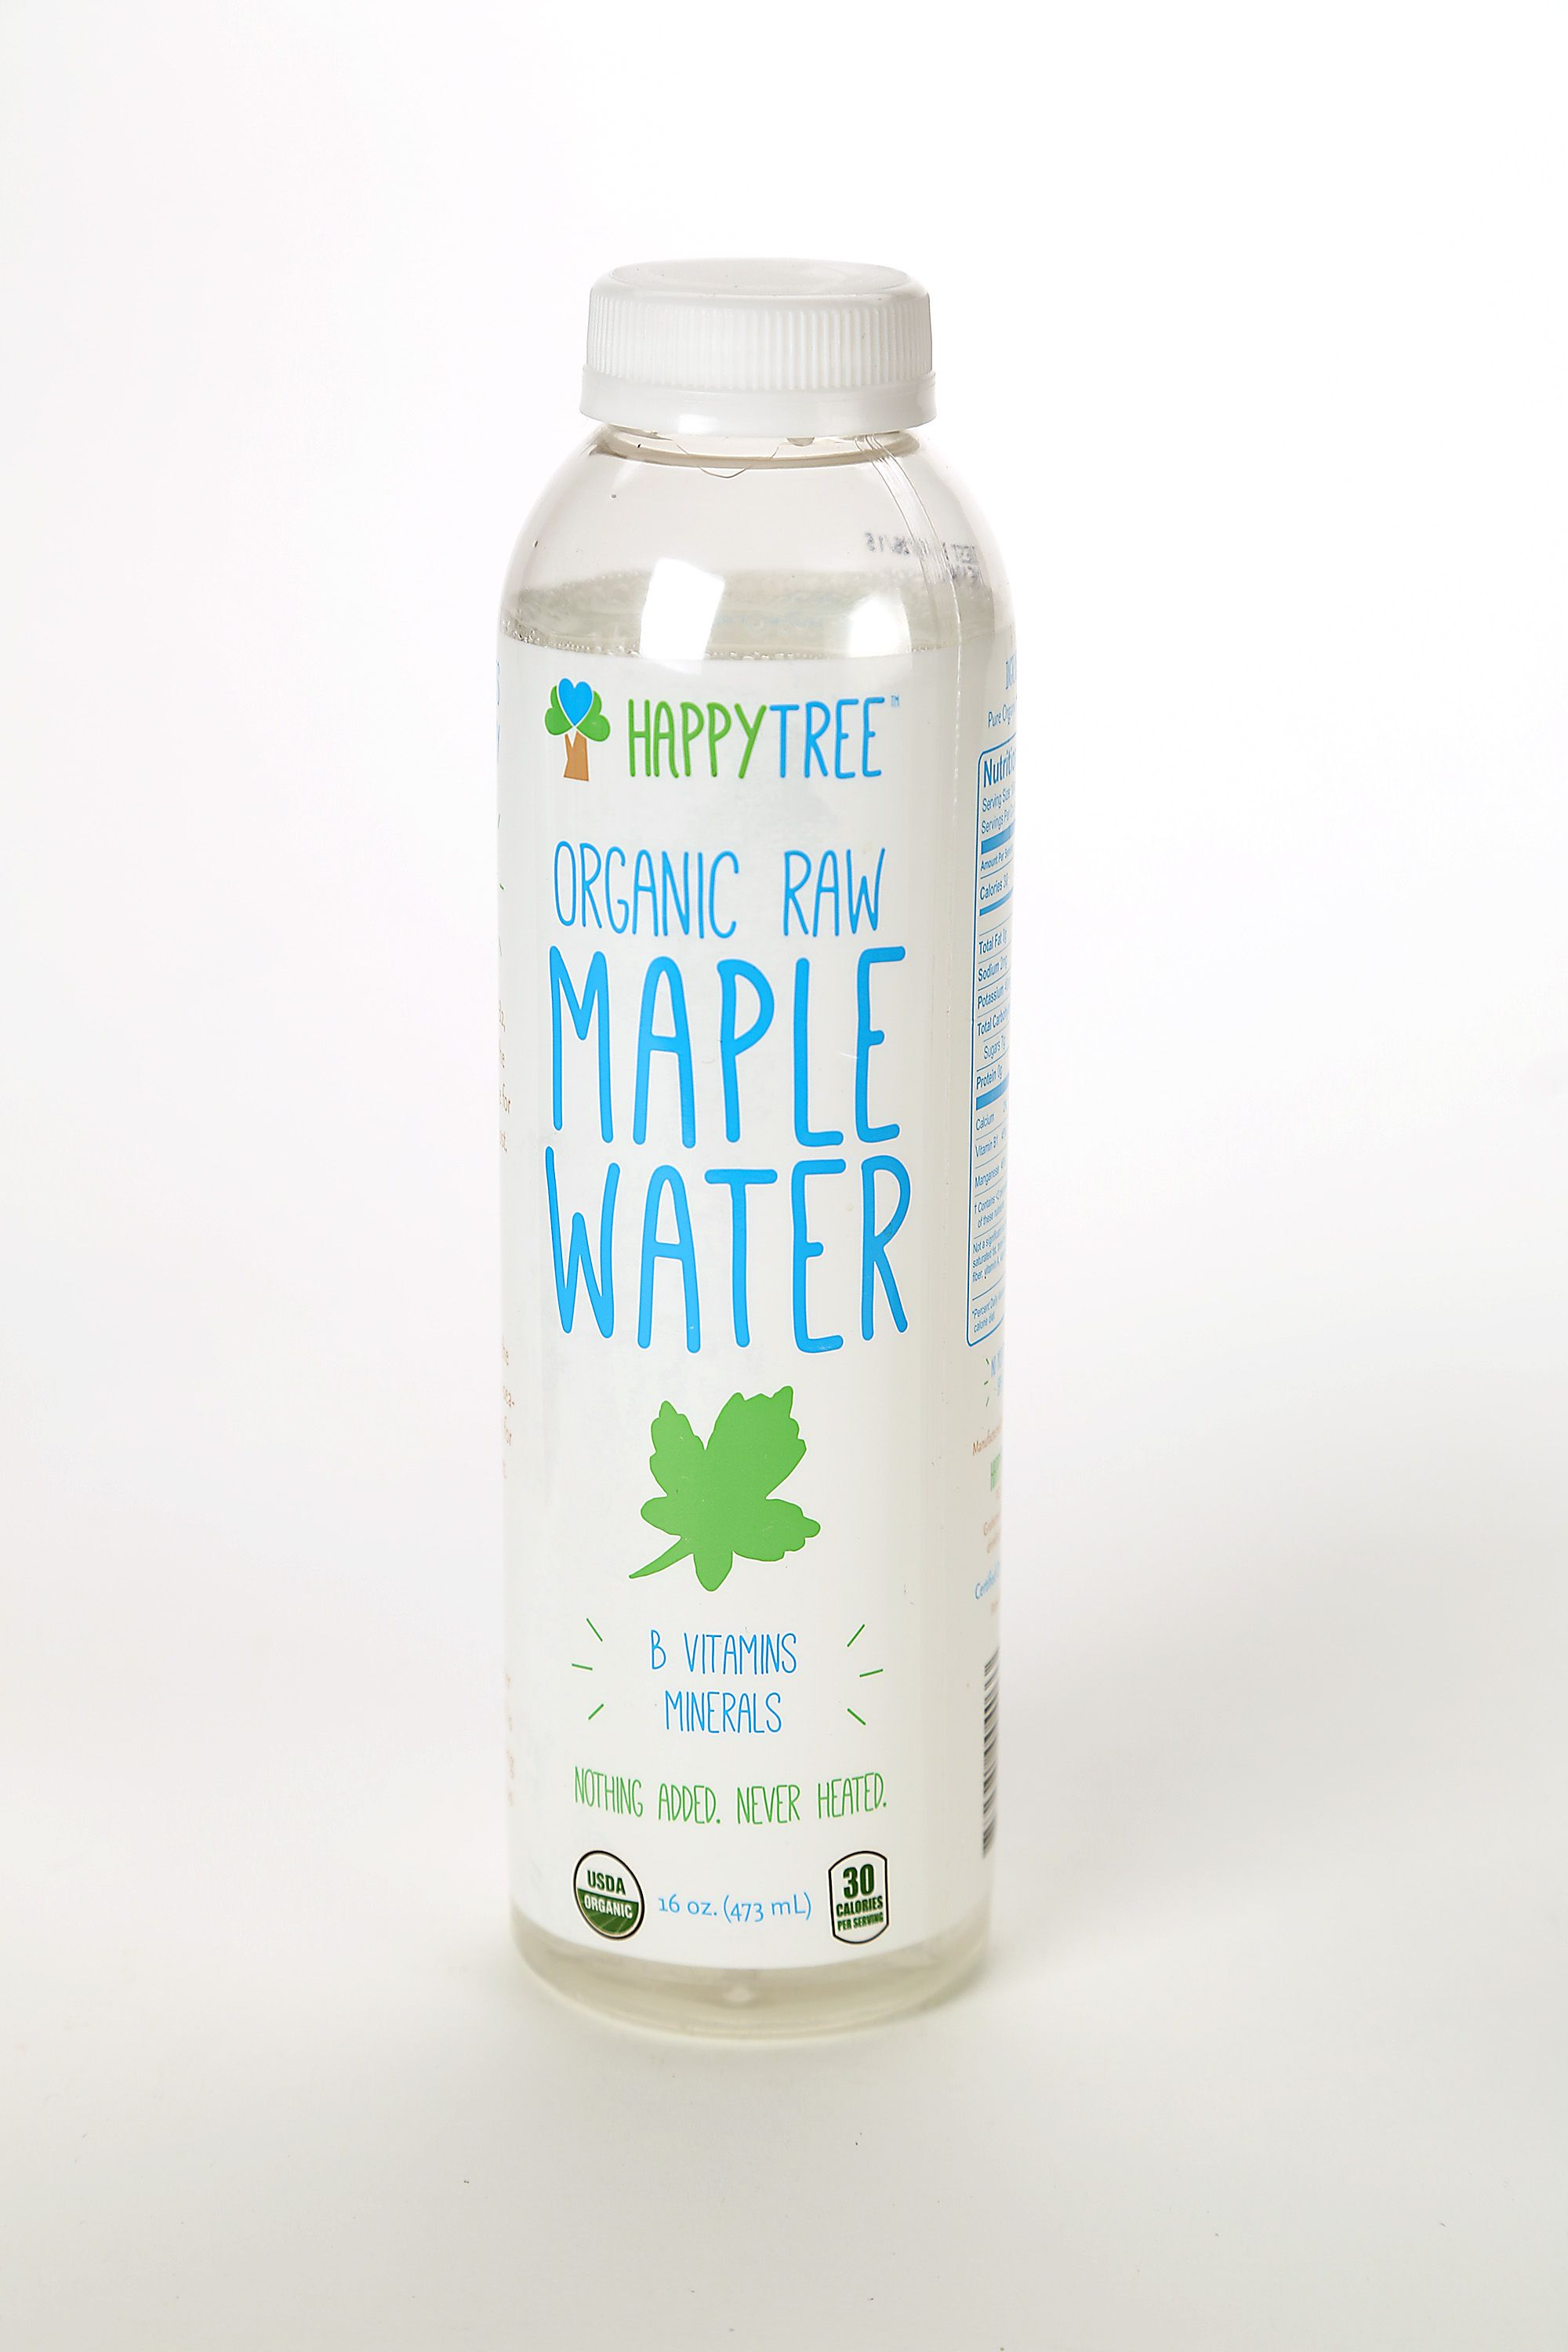 Coconut water has been big for a couple years; now we can find cactus water, maple water, almond, olive, artichoke and watermelon water. There are called Crazy Water from Mineral Wells resort in Texas. Ultra cool blk water is enhanced with 60 fulvic-trace minerals. Pictured is organic raw MAPLE WATER form HappyTree. (